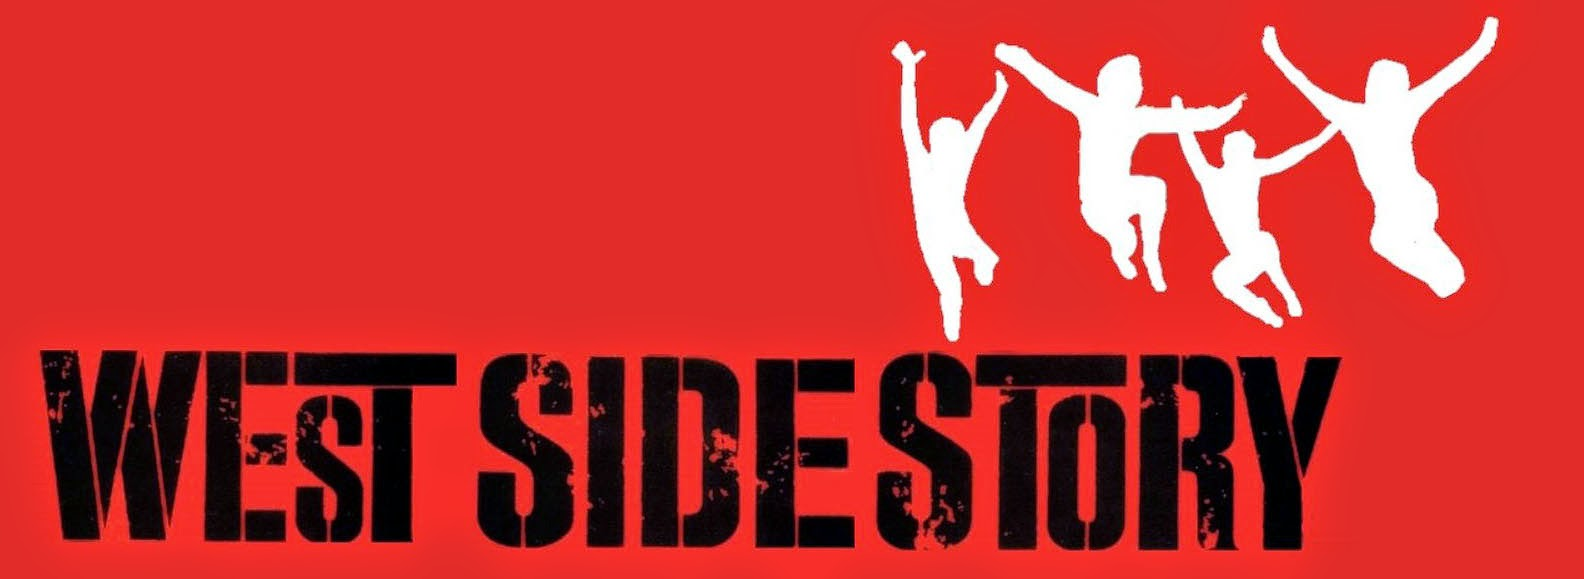 west_side_story___wallpaper_by_thedrifterwithin-d63raal